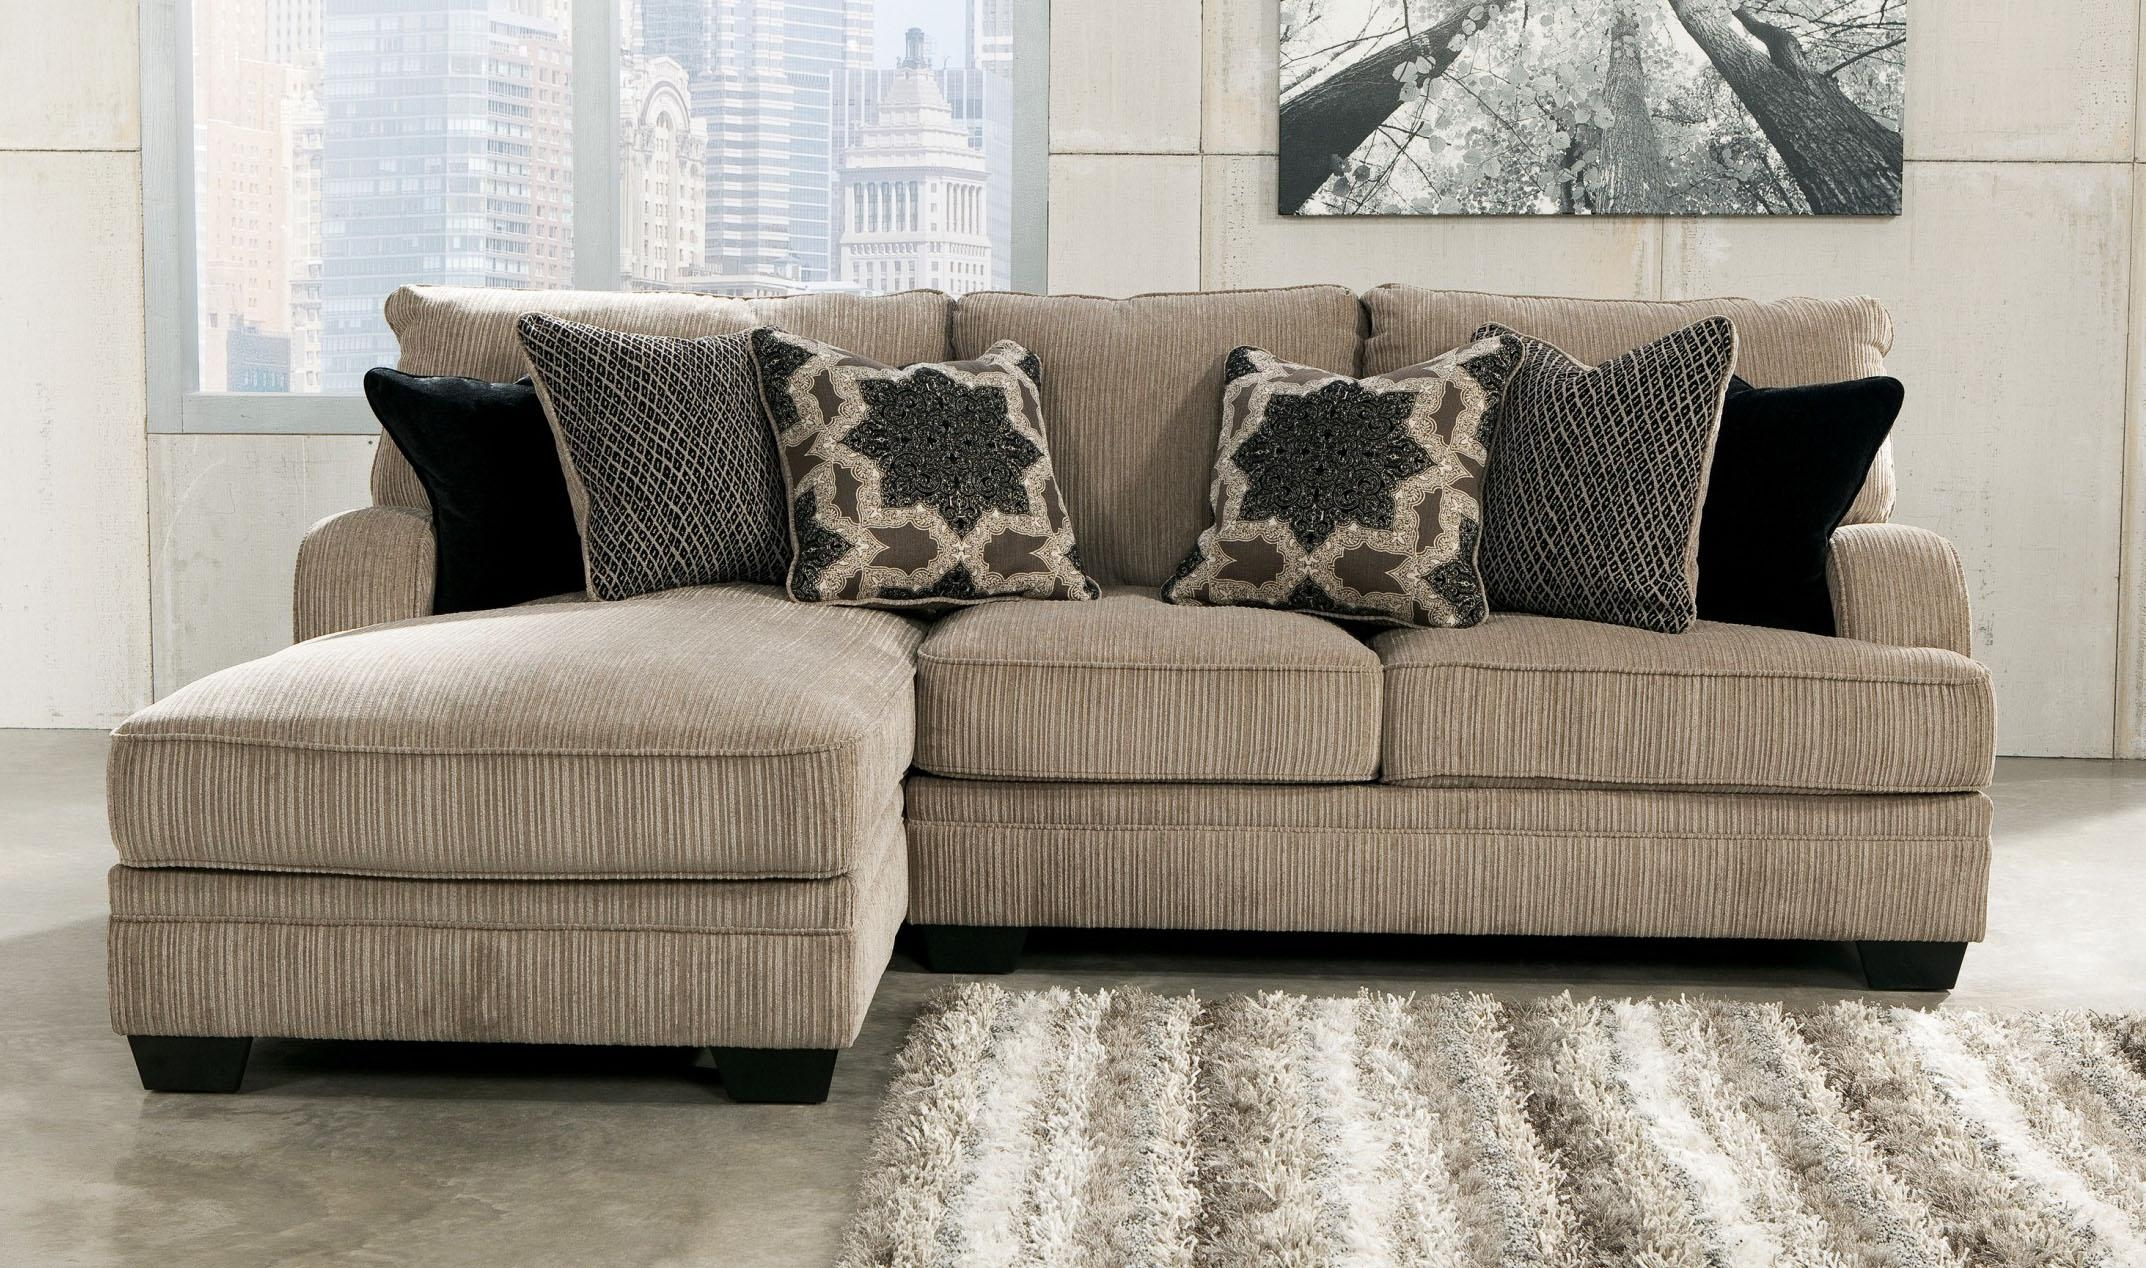 L Shape Couch. Upholstered Sectional Sofa (Image 4 of 20)